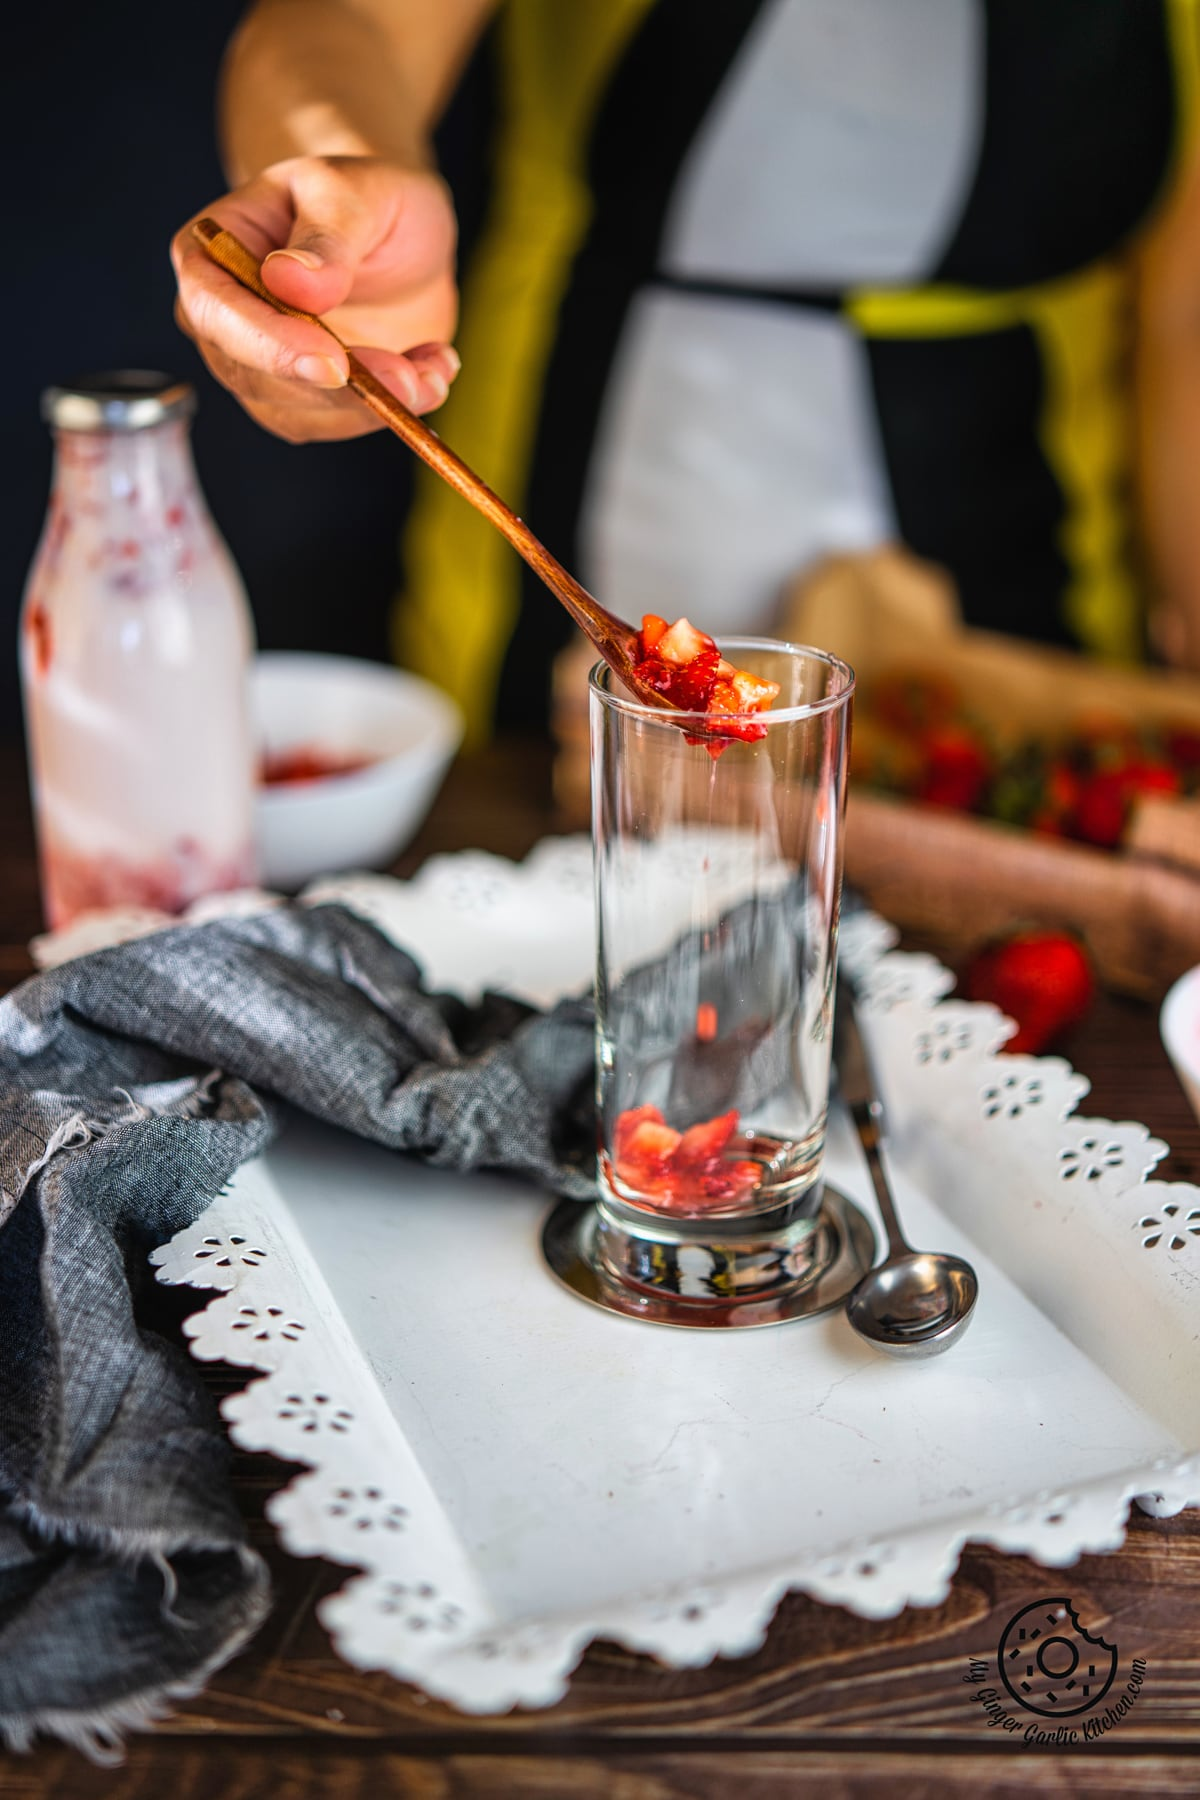 a hand hodling a wodden spoon with chopped strawberries over a tall glass